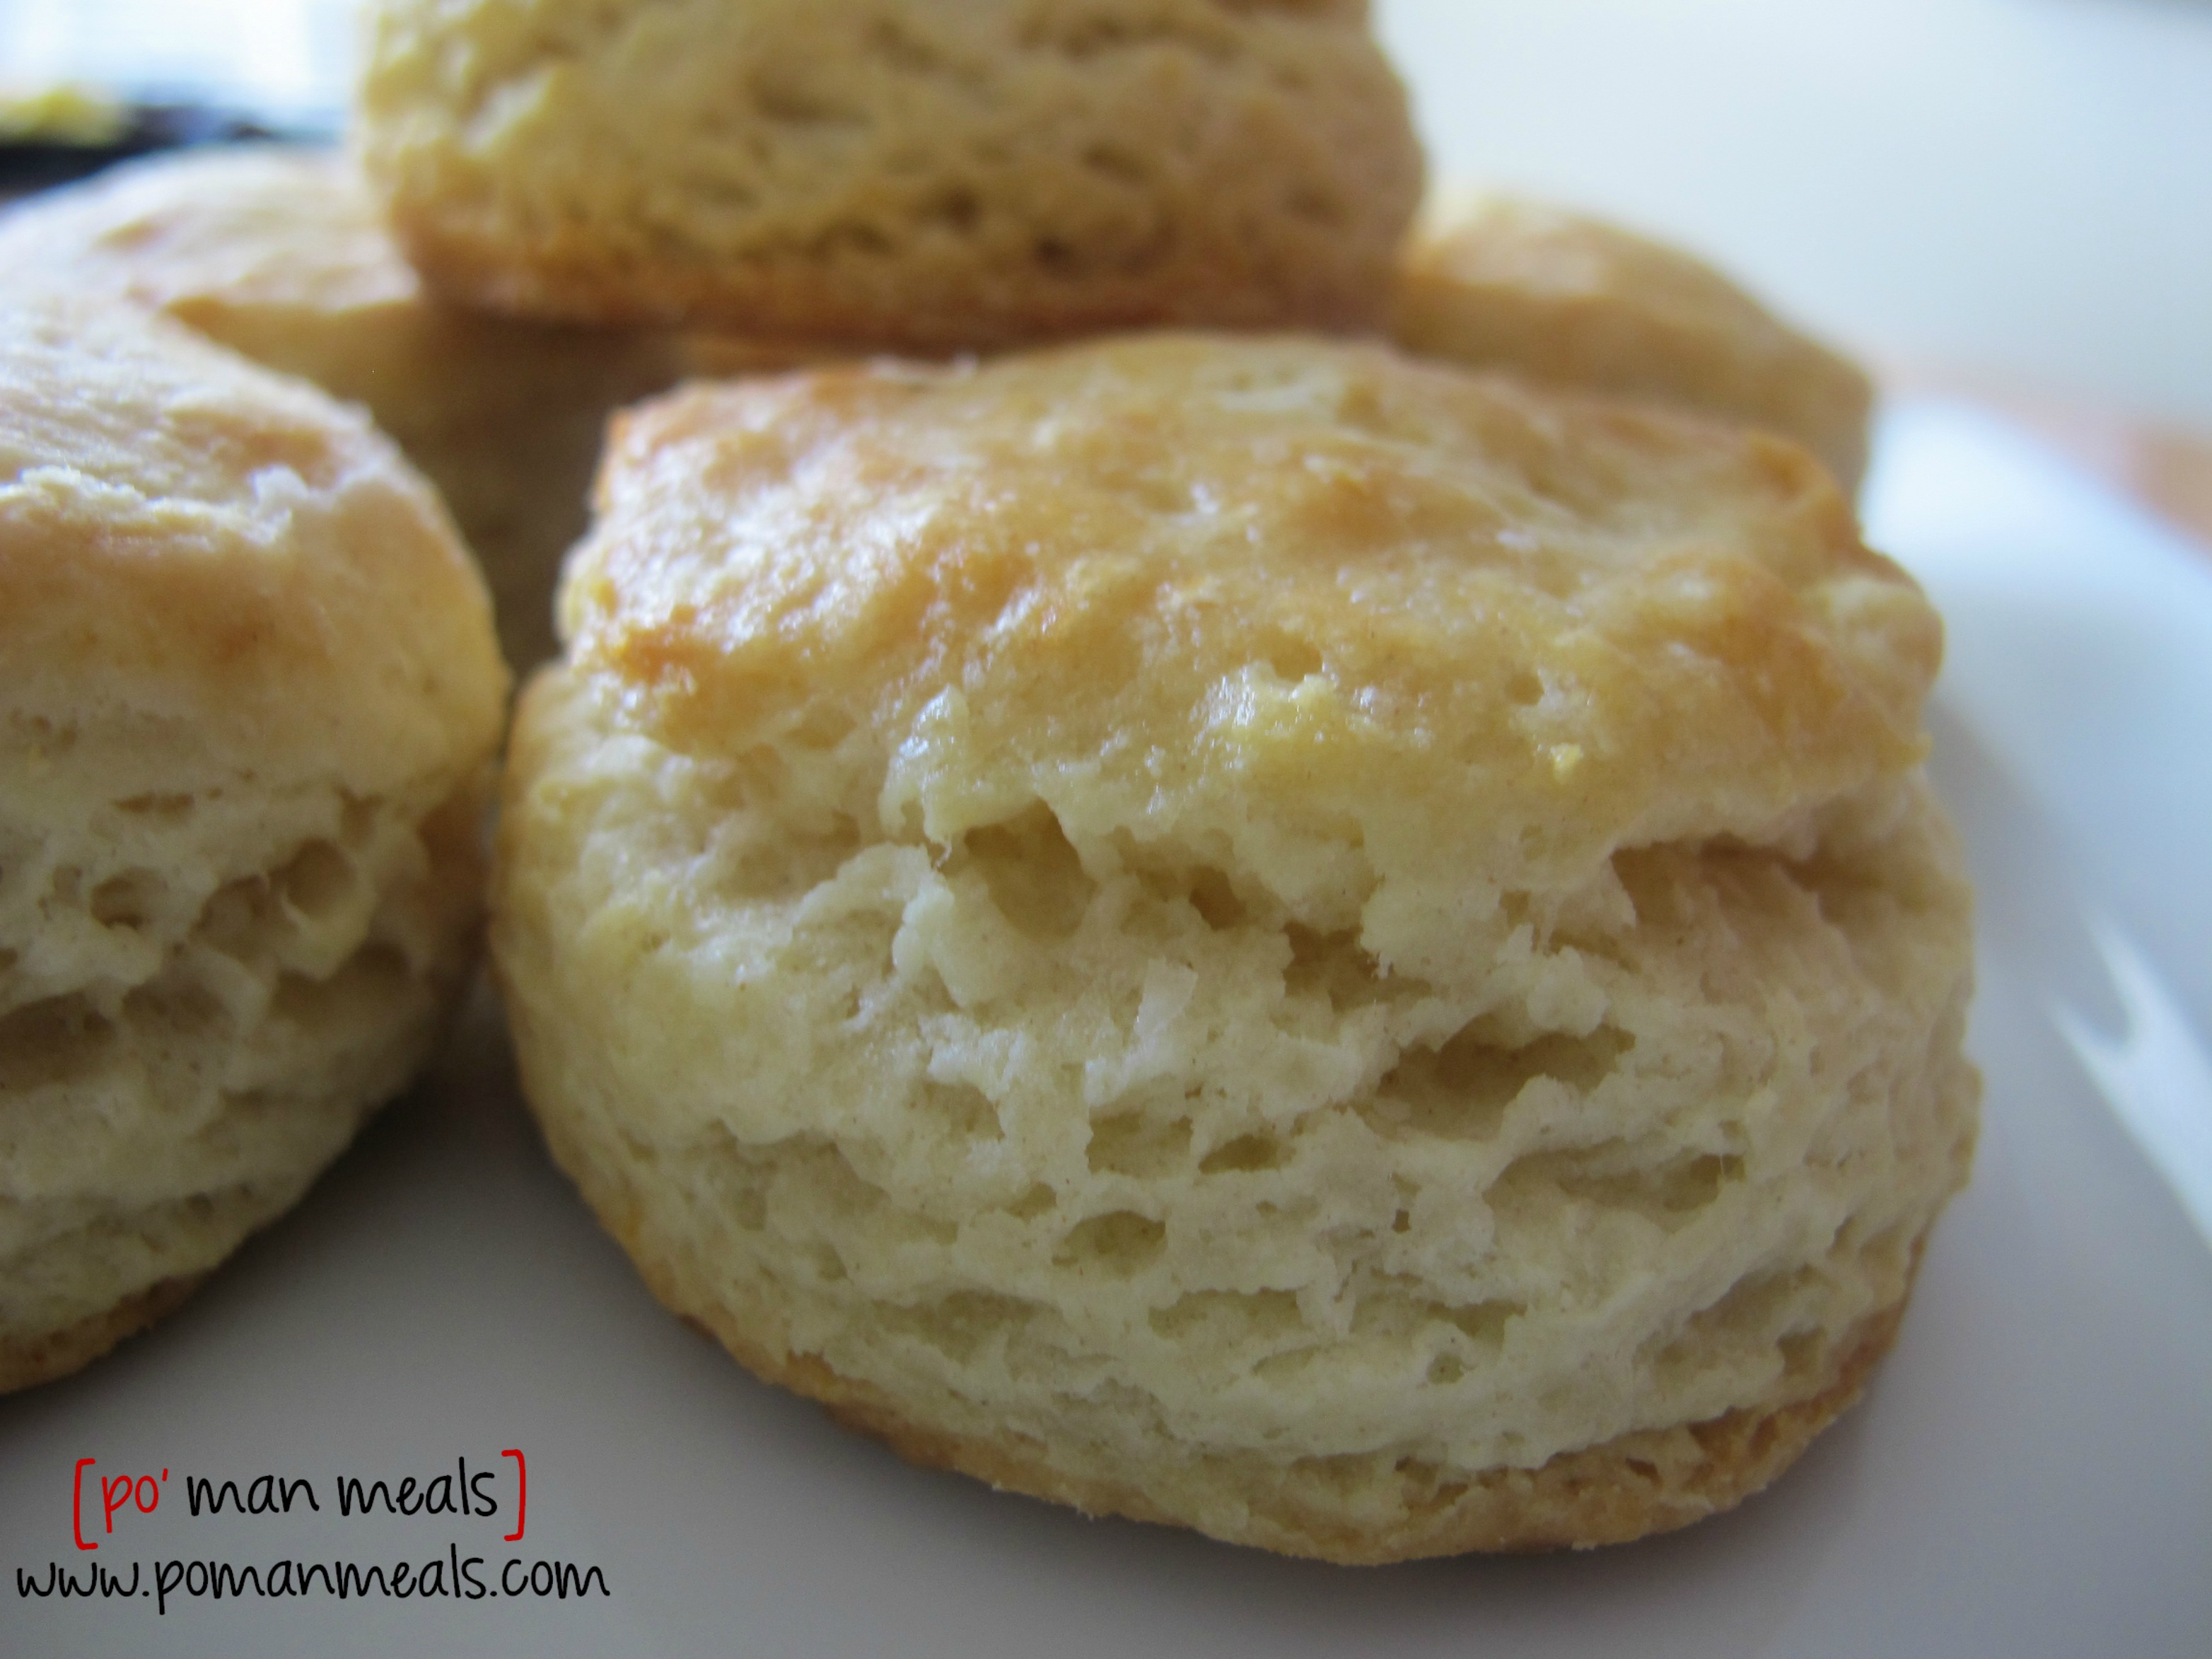 po' man meals - homemade buttermilk biscuits